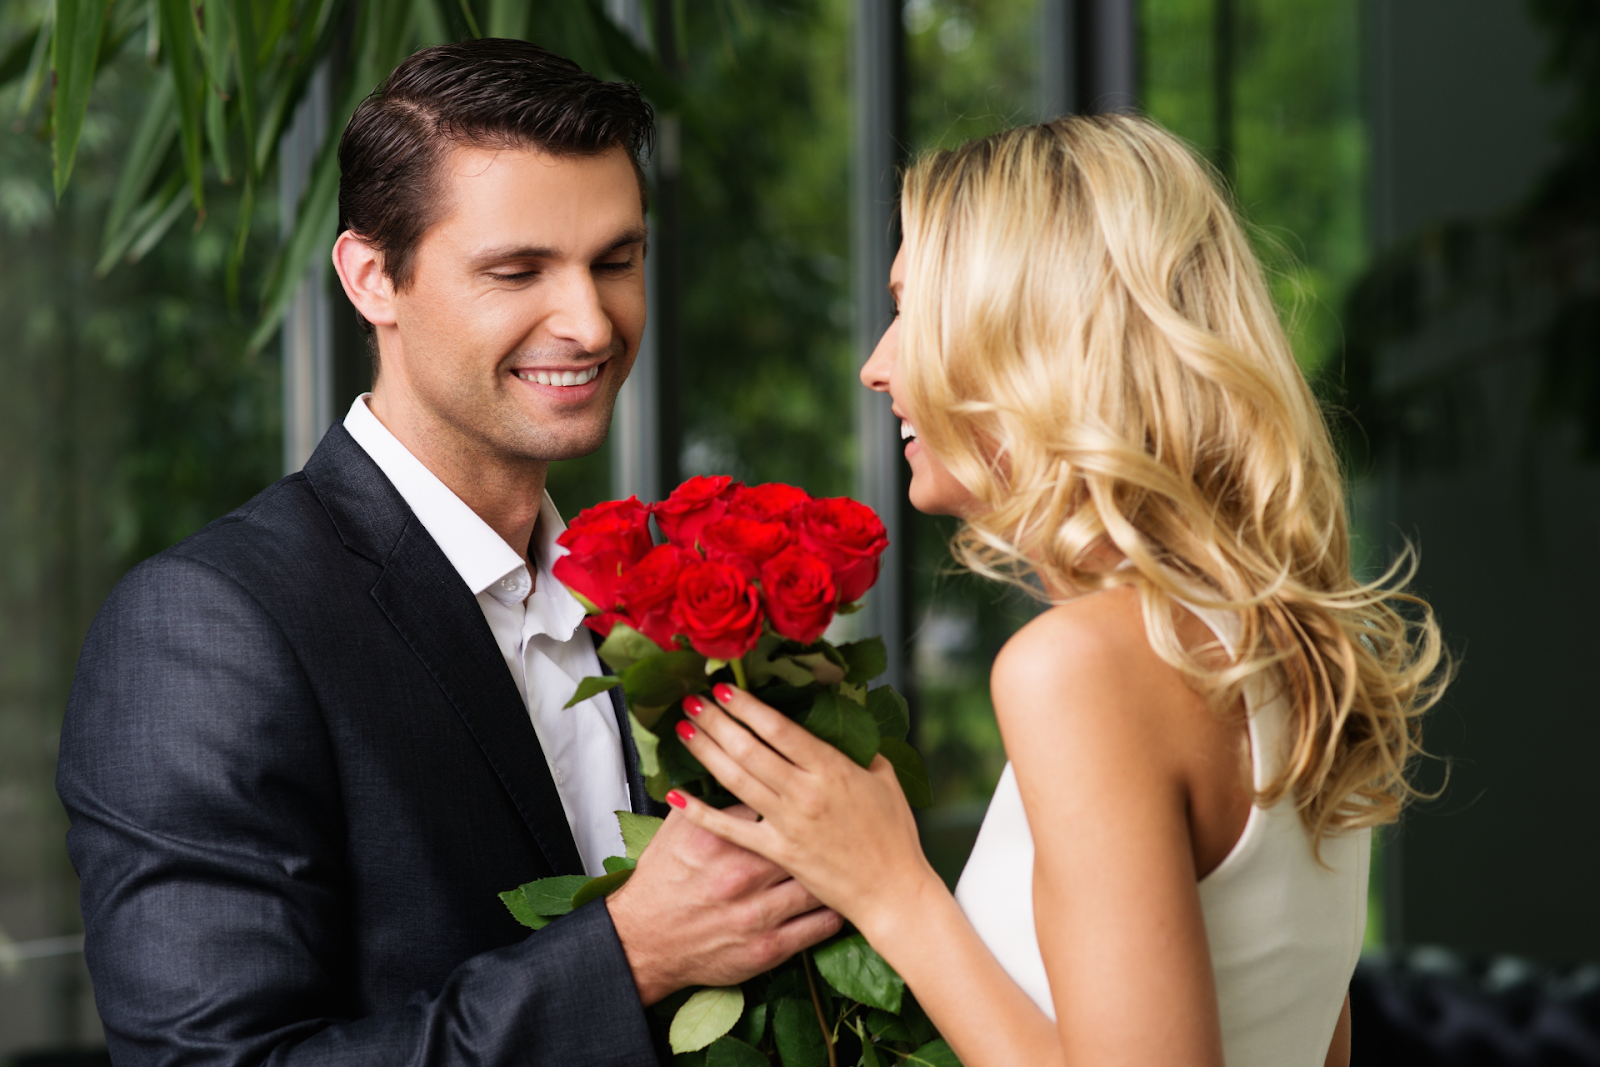 man giving woman bouquet of red roses